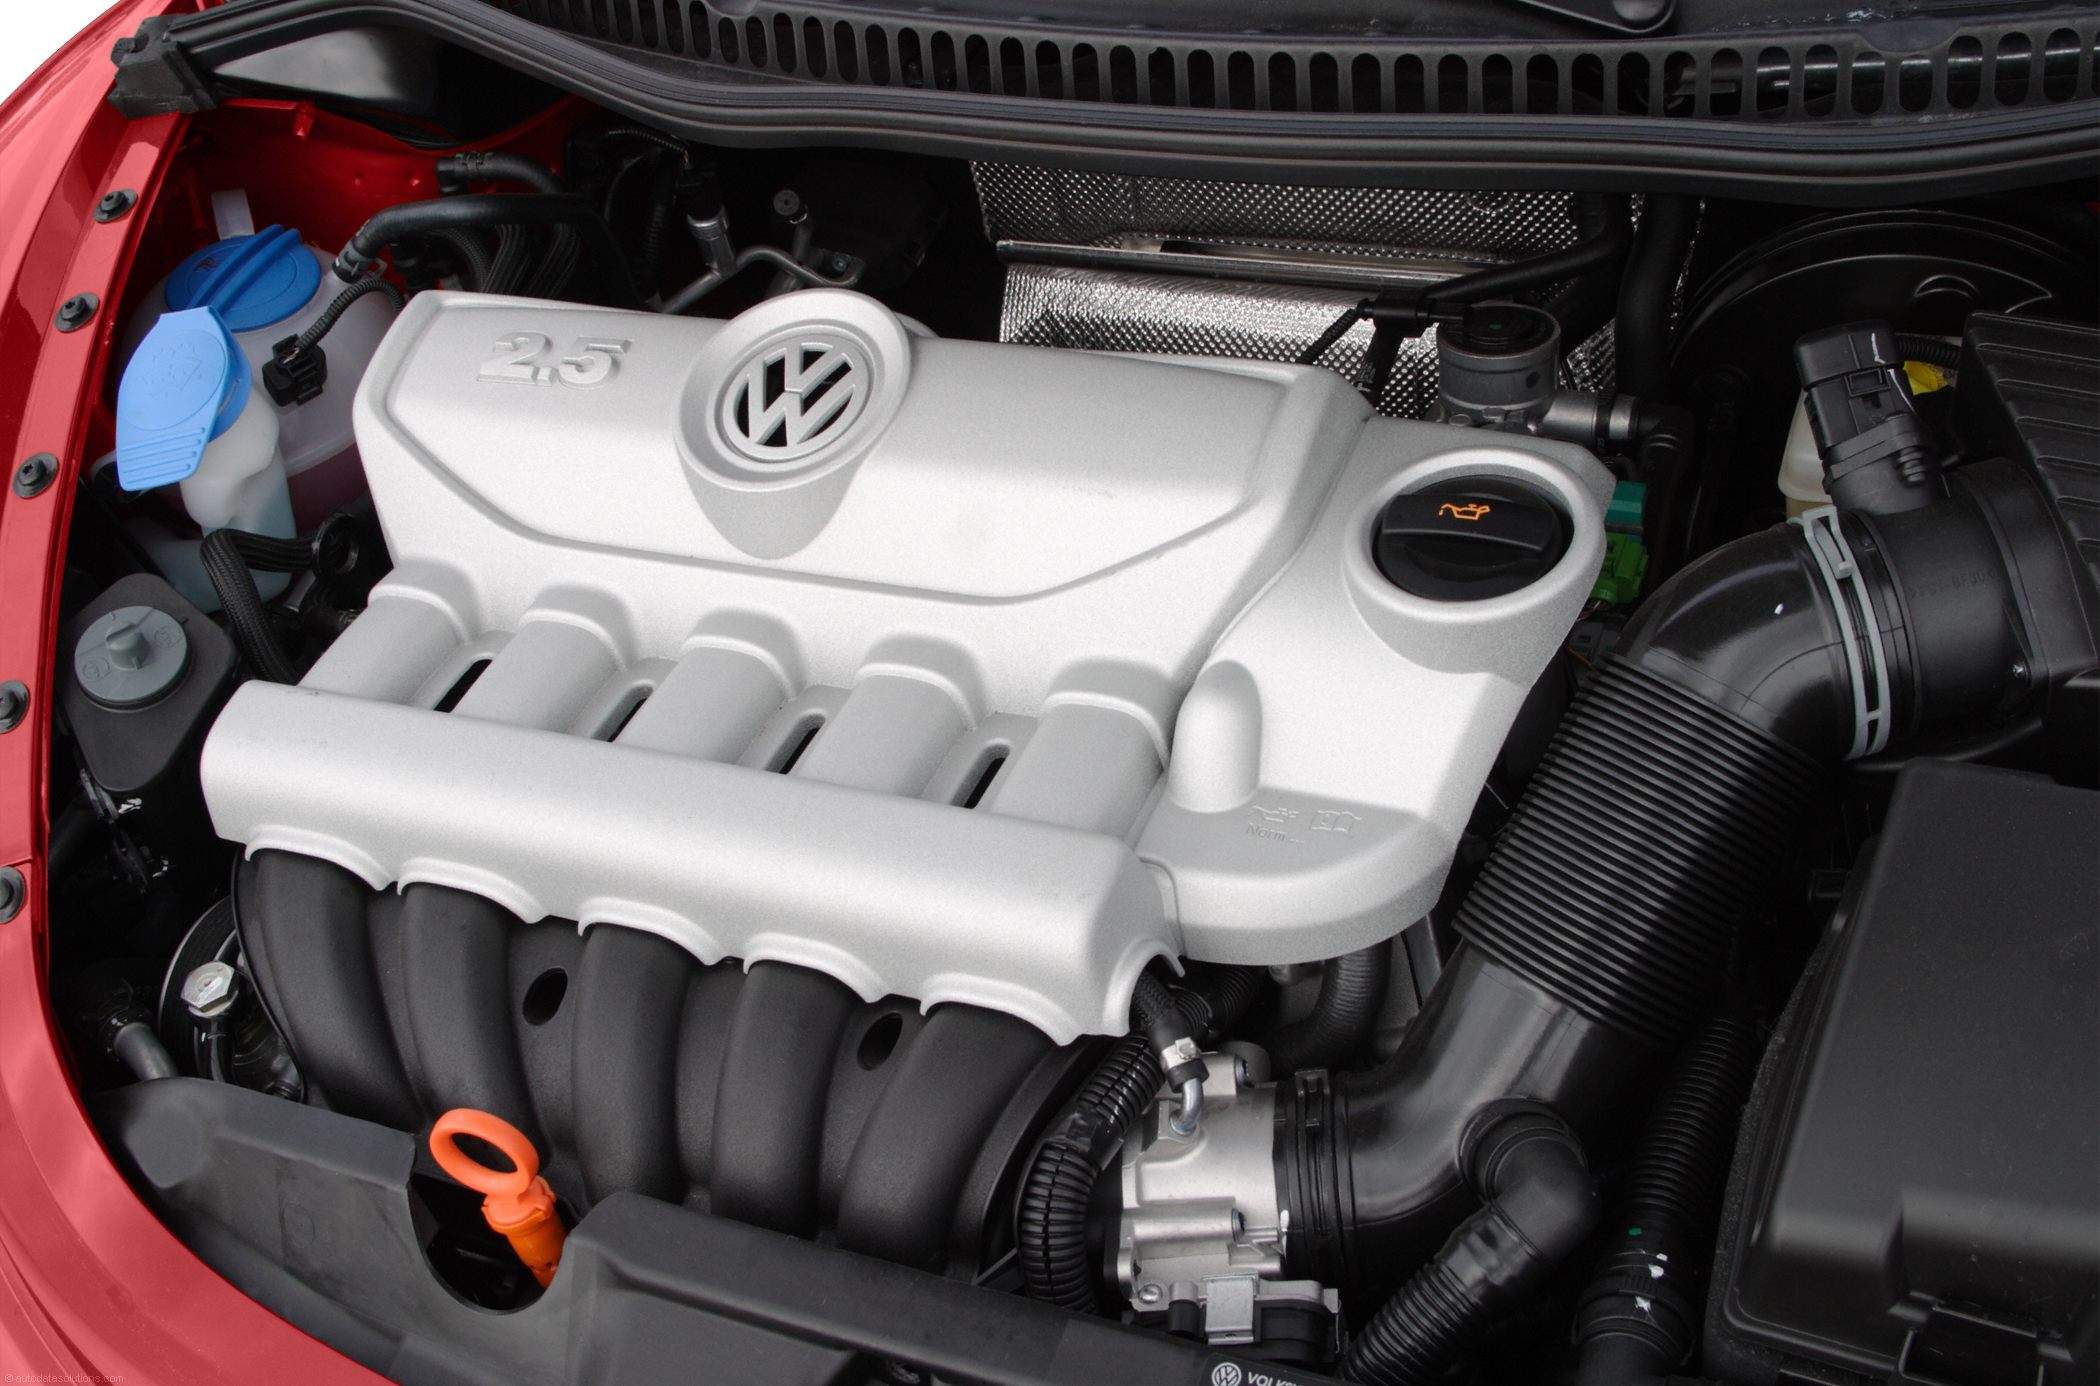 Volkswagen New Beetle engine #3